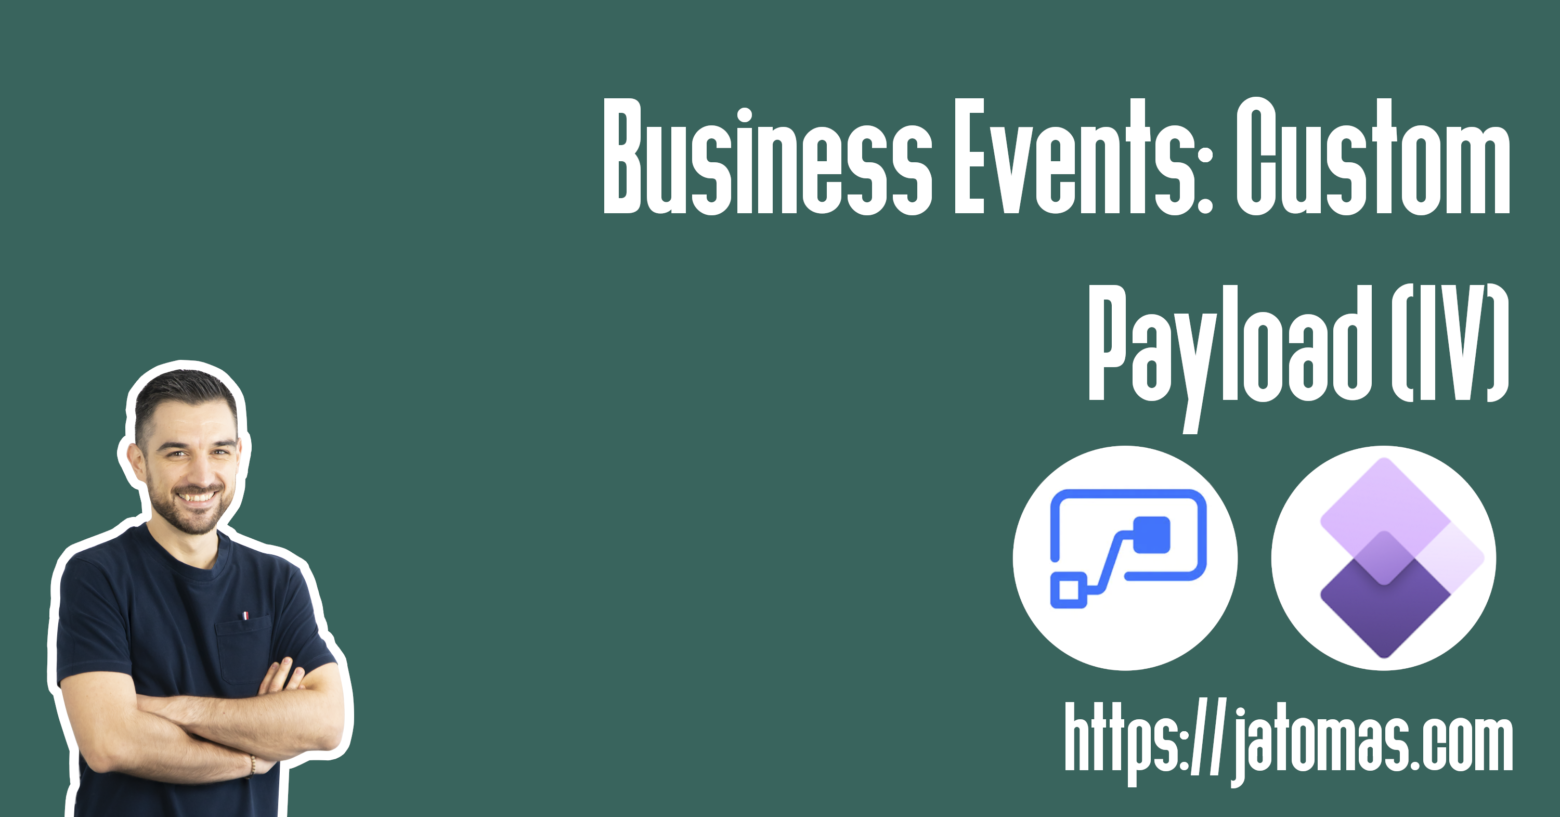 Business Events - Custom Payload (IV)